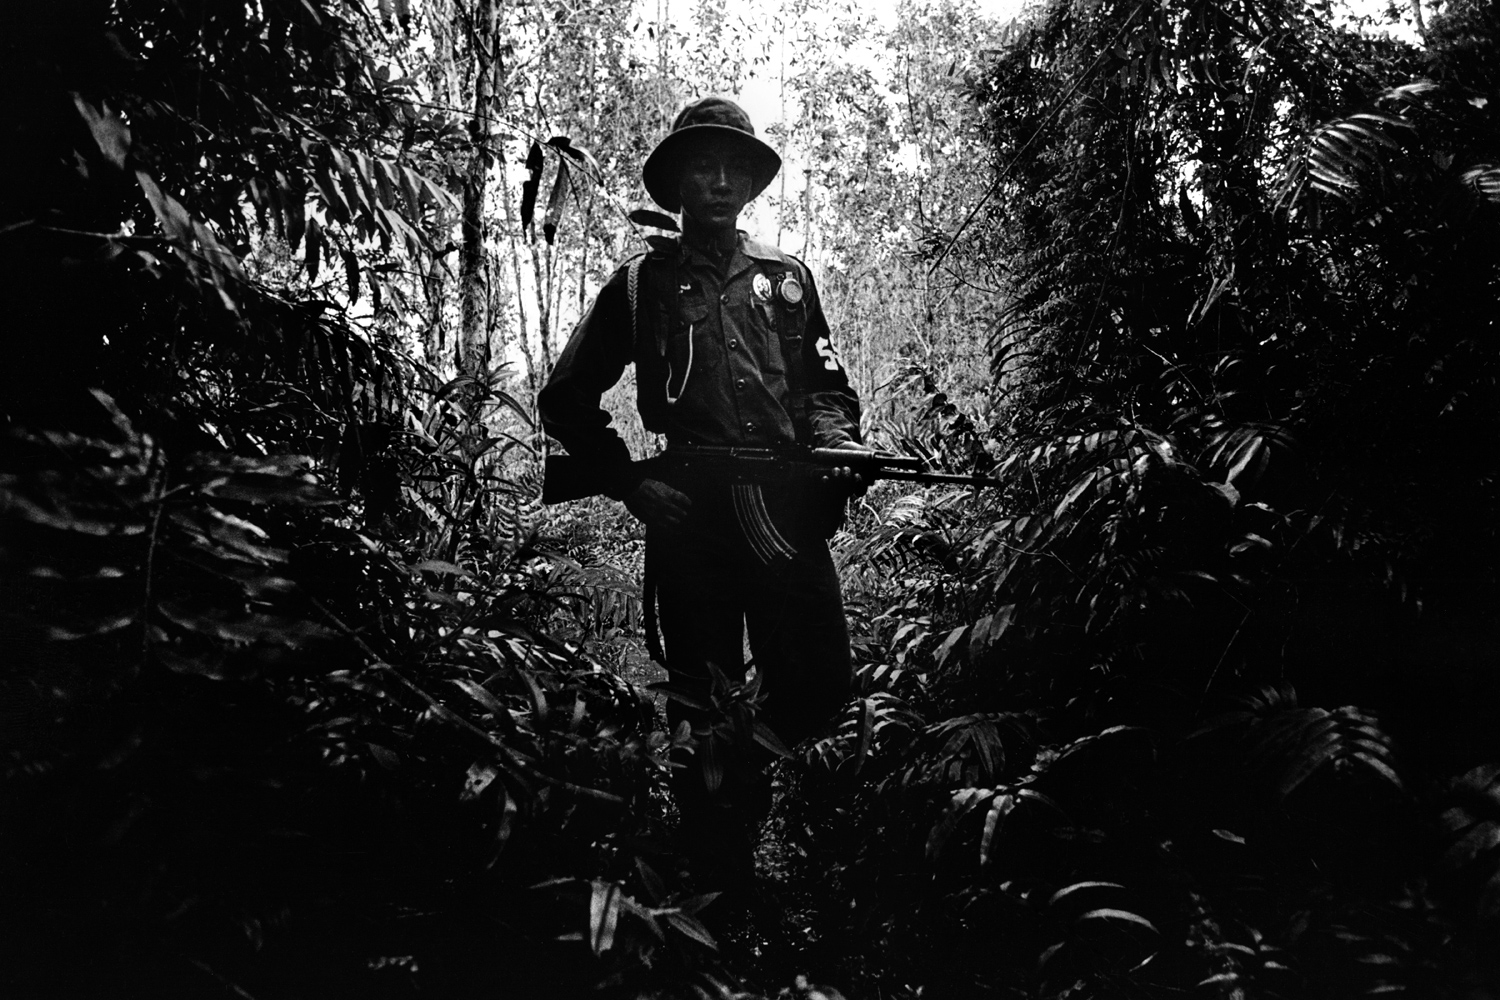 Bokor, Cambodia                                                                                             An armed member of the National Cambodian Forestry Department patrols the Sre Ambel delta region in Bokor National Park, as part of the drive to stop the trade of wildlife that takes place between the hills and the lowlands.